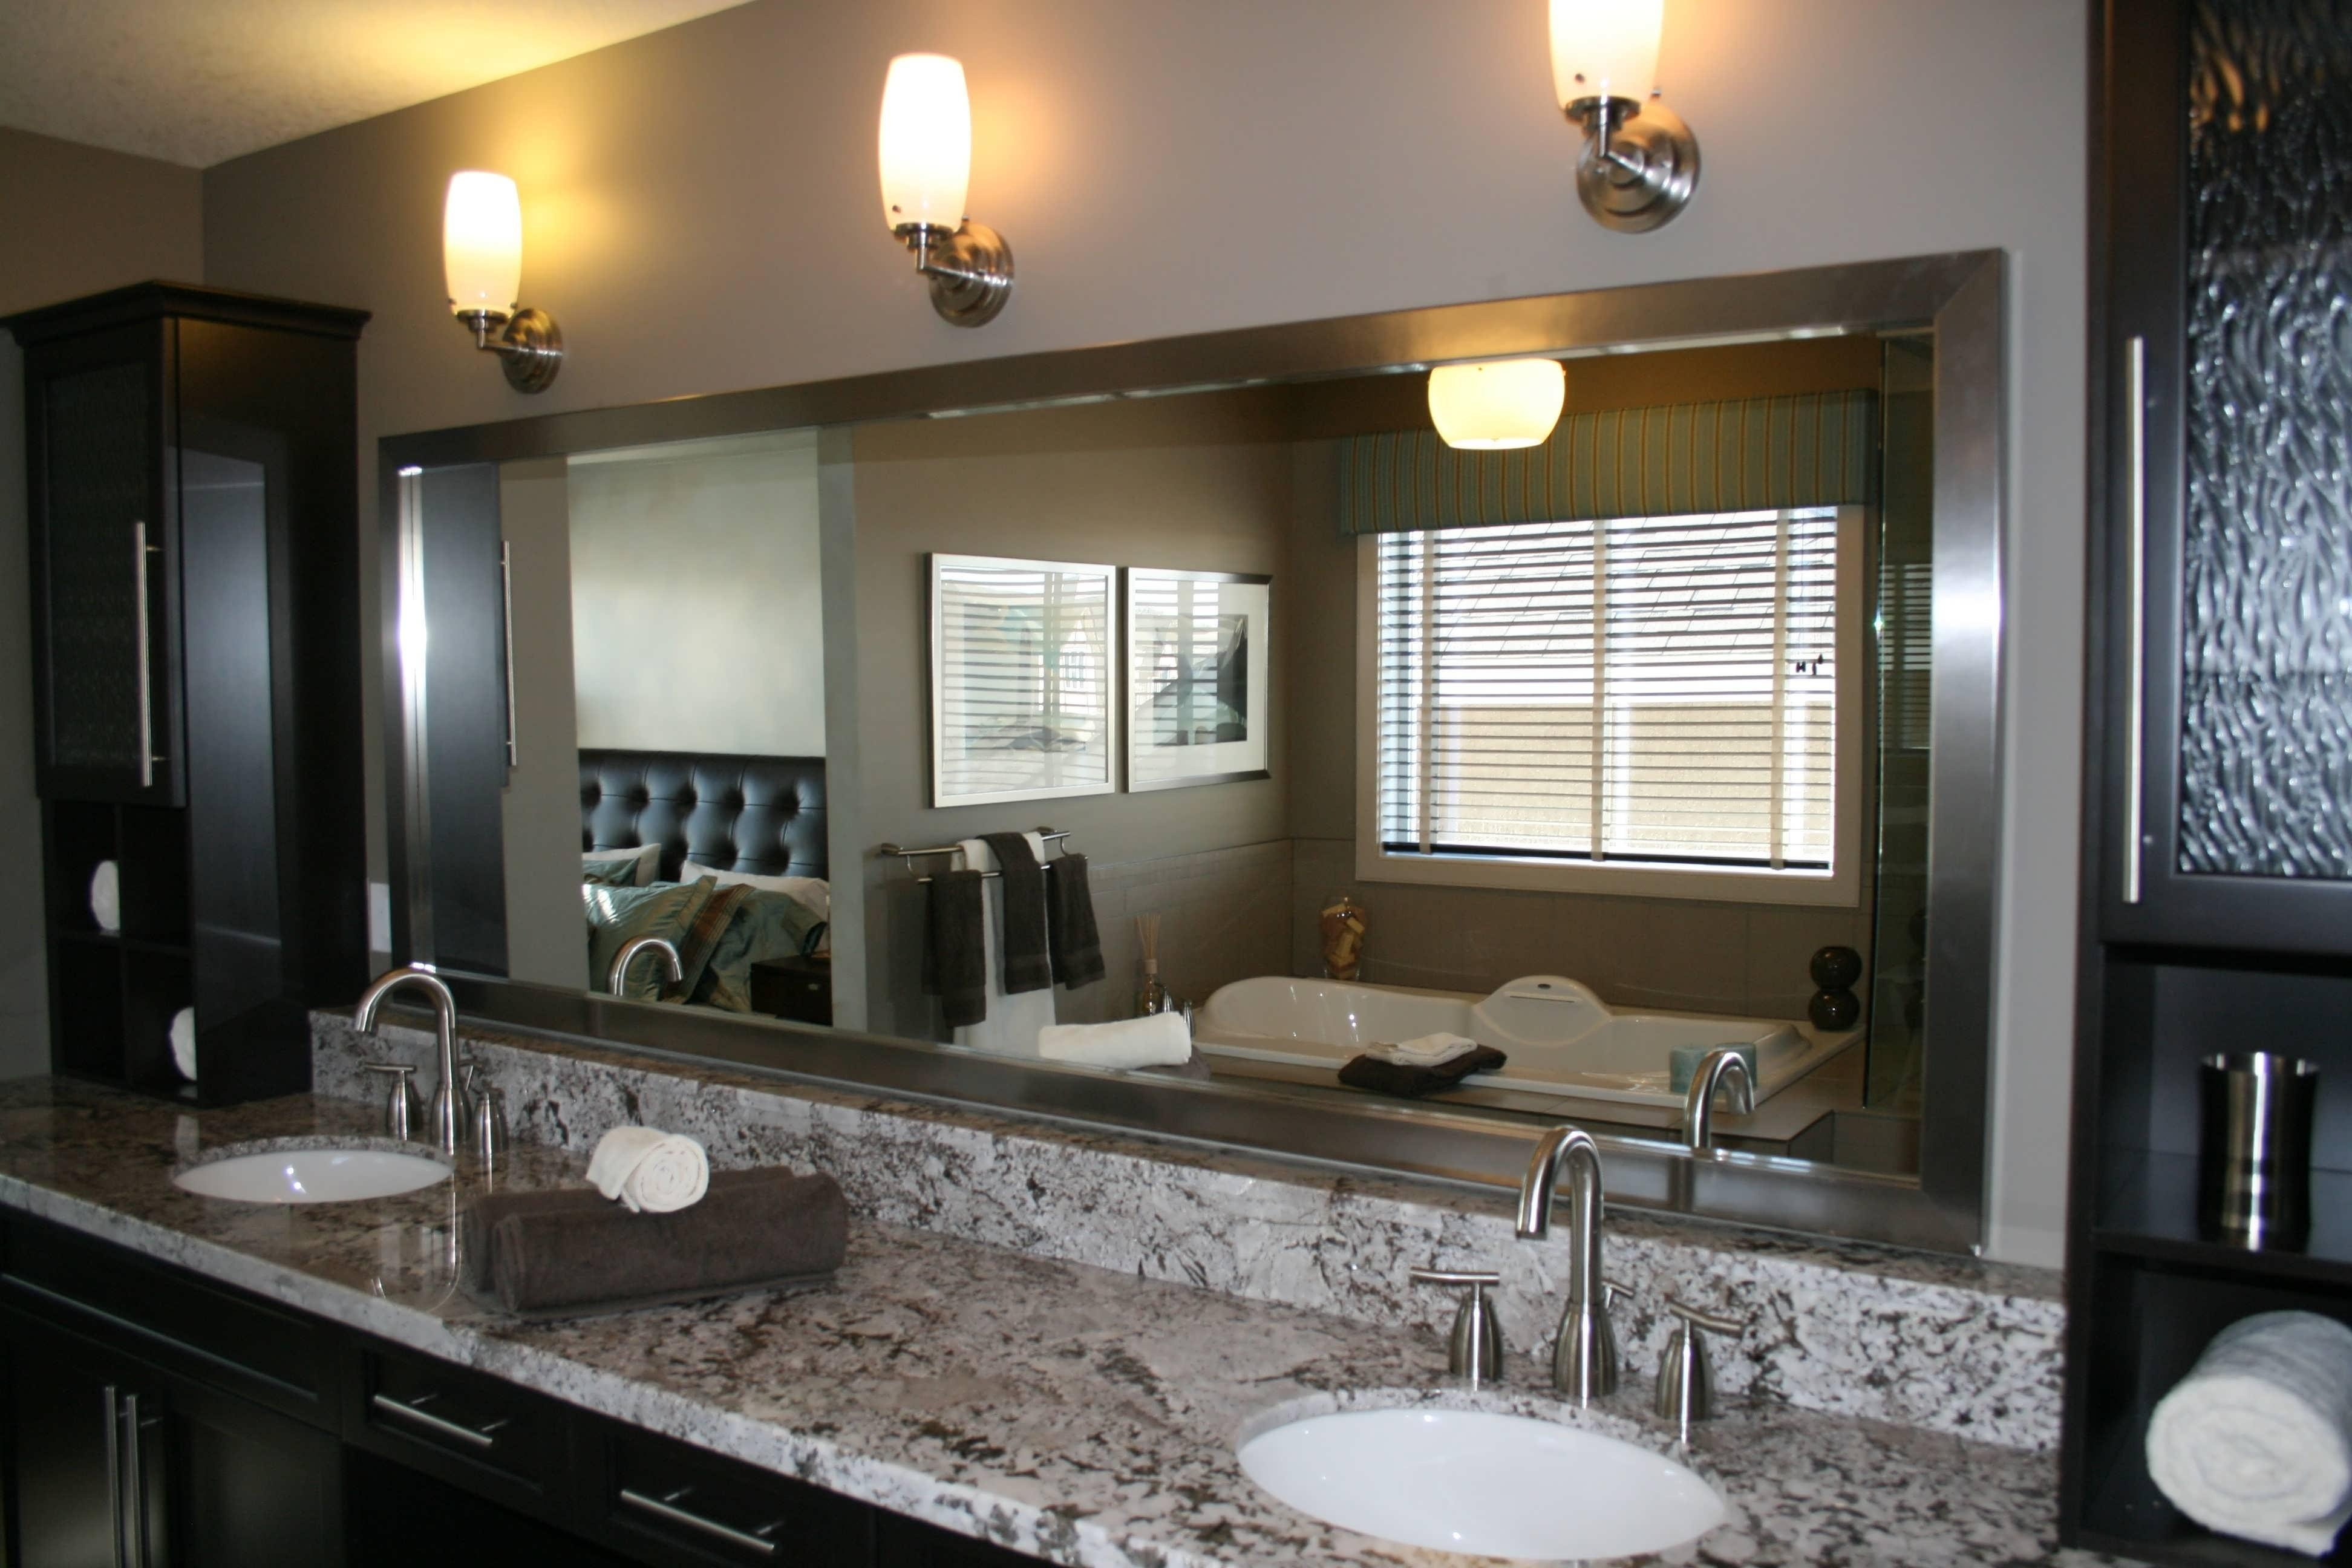 20 Ideas Of Large Mirrors For Bathroom Walls